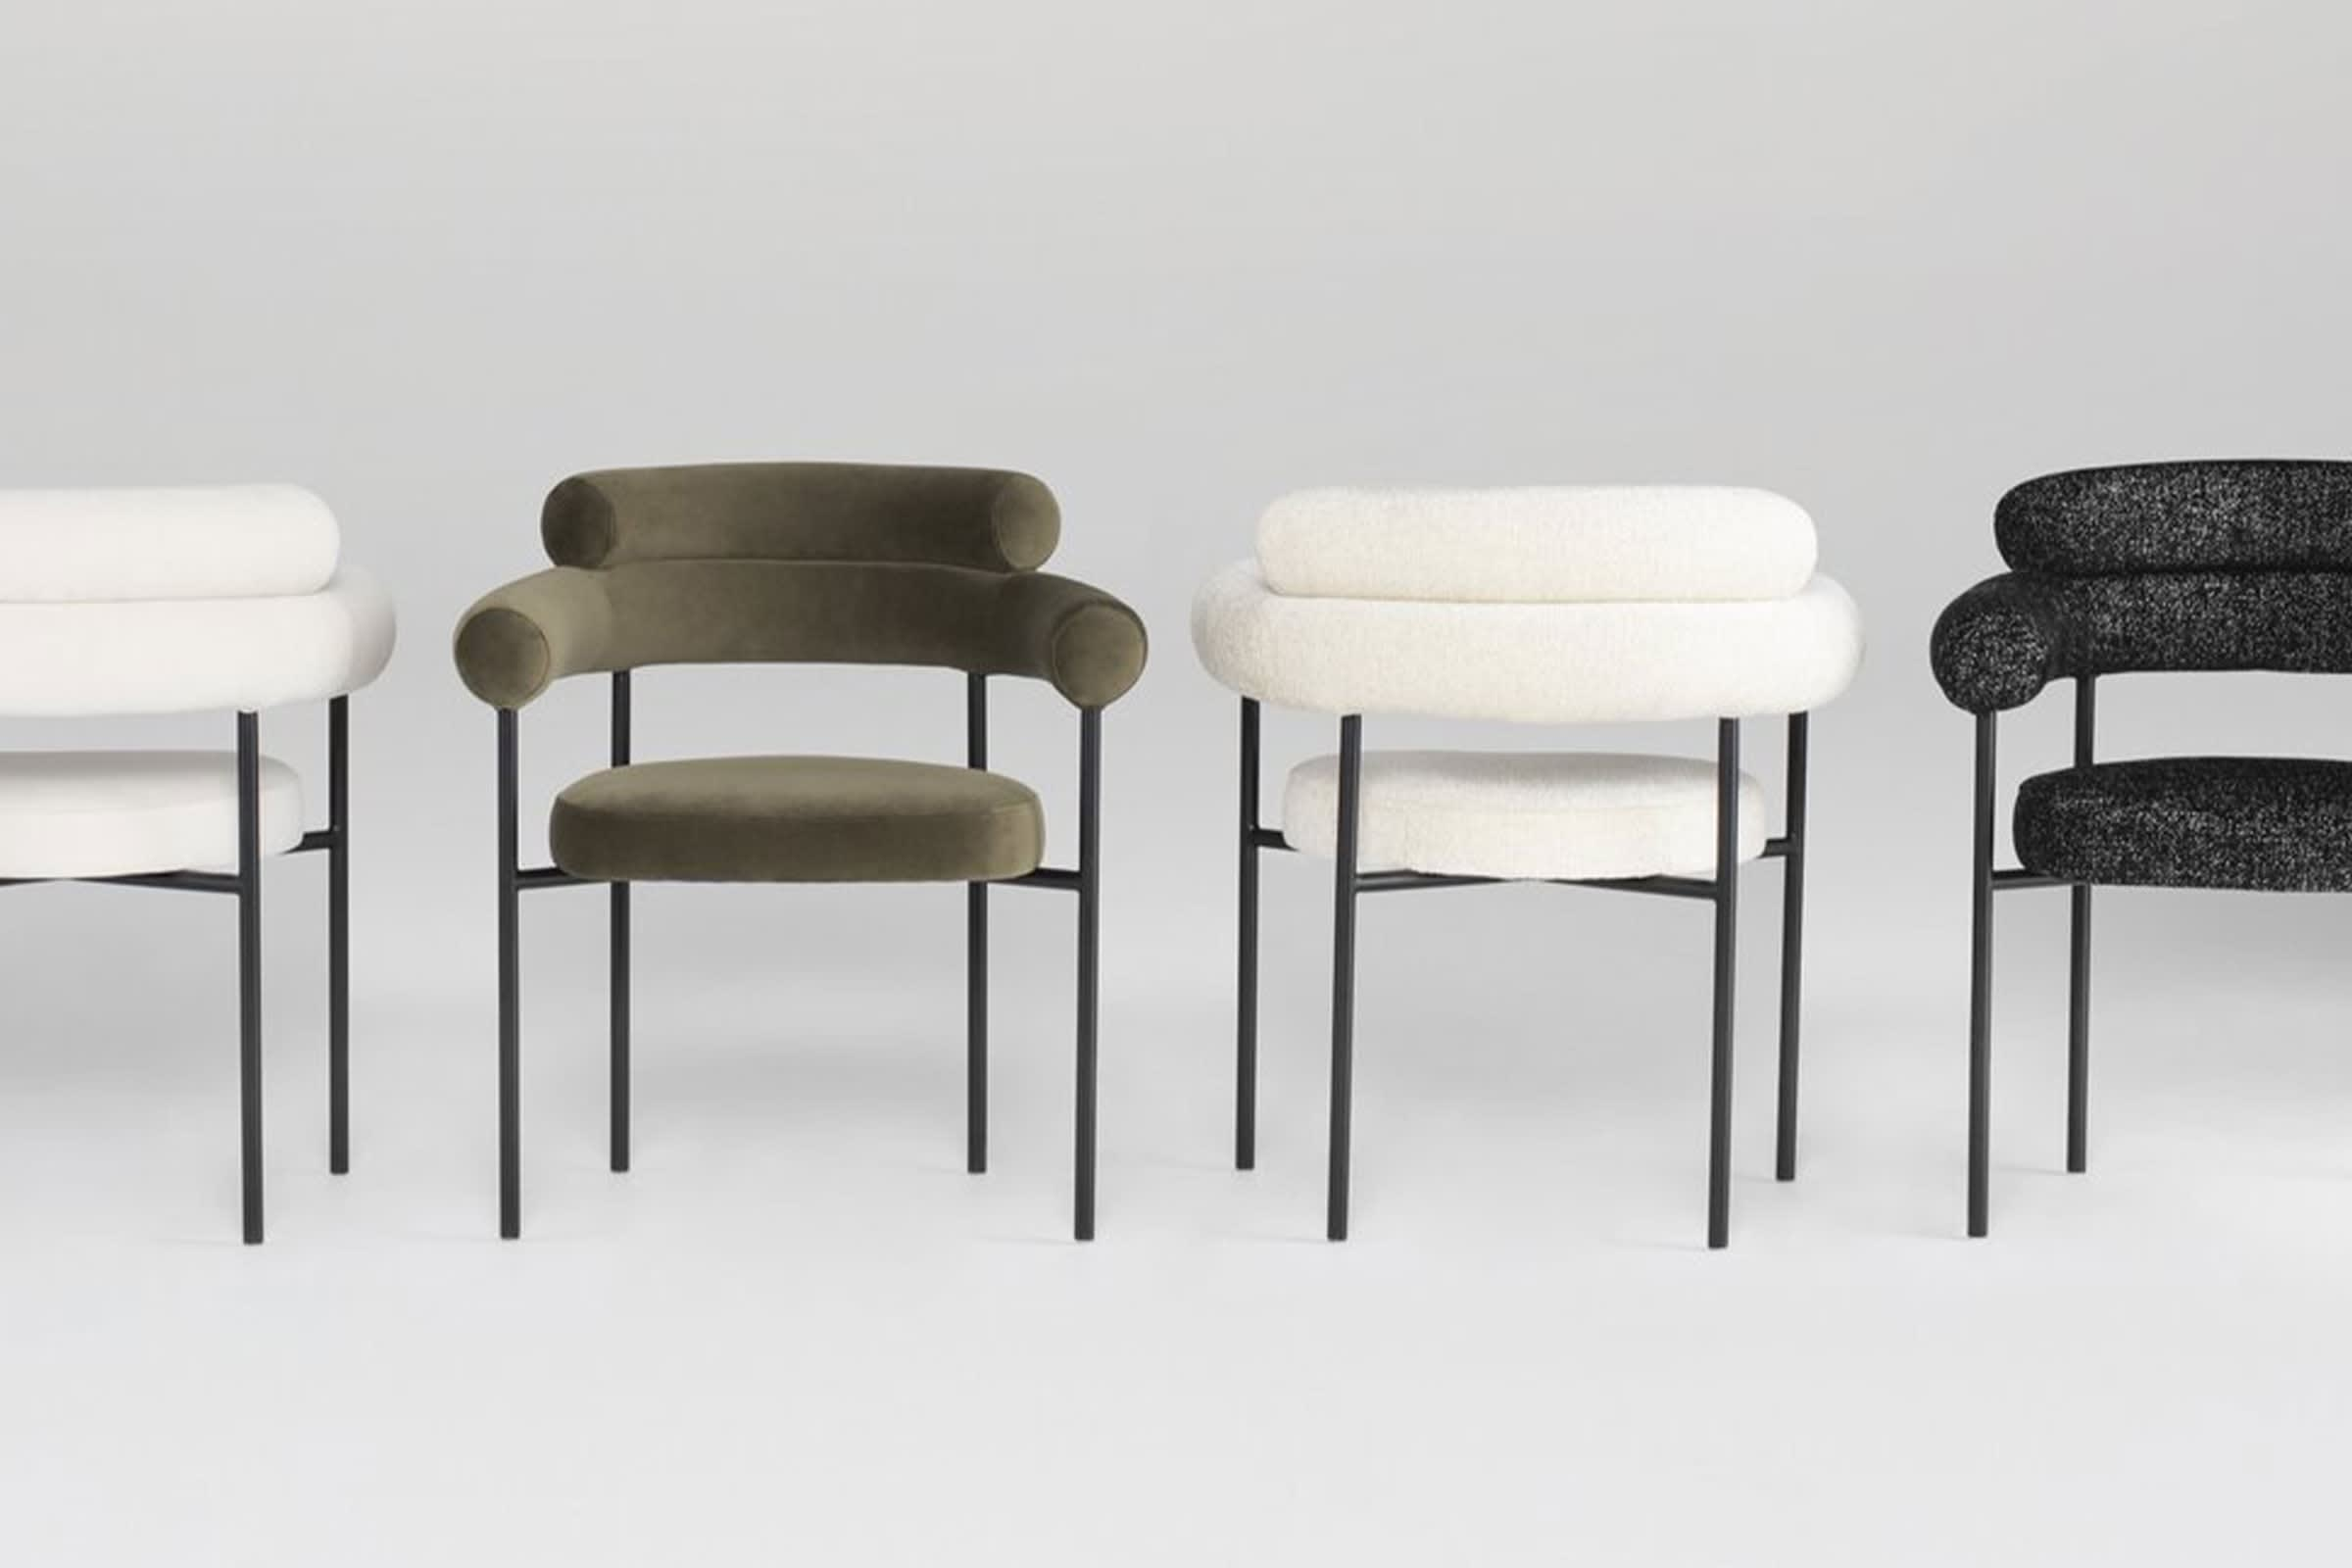 Chair by Nuevo Furniture in assorted colors